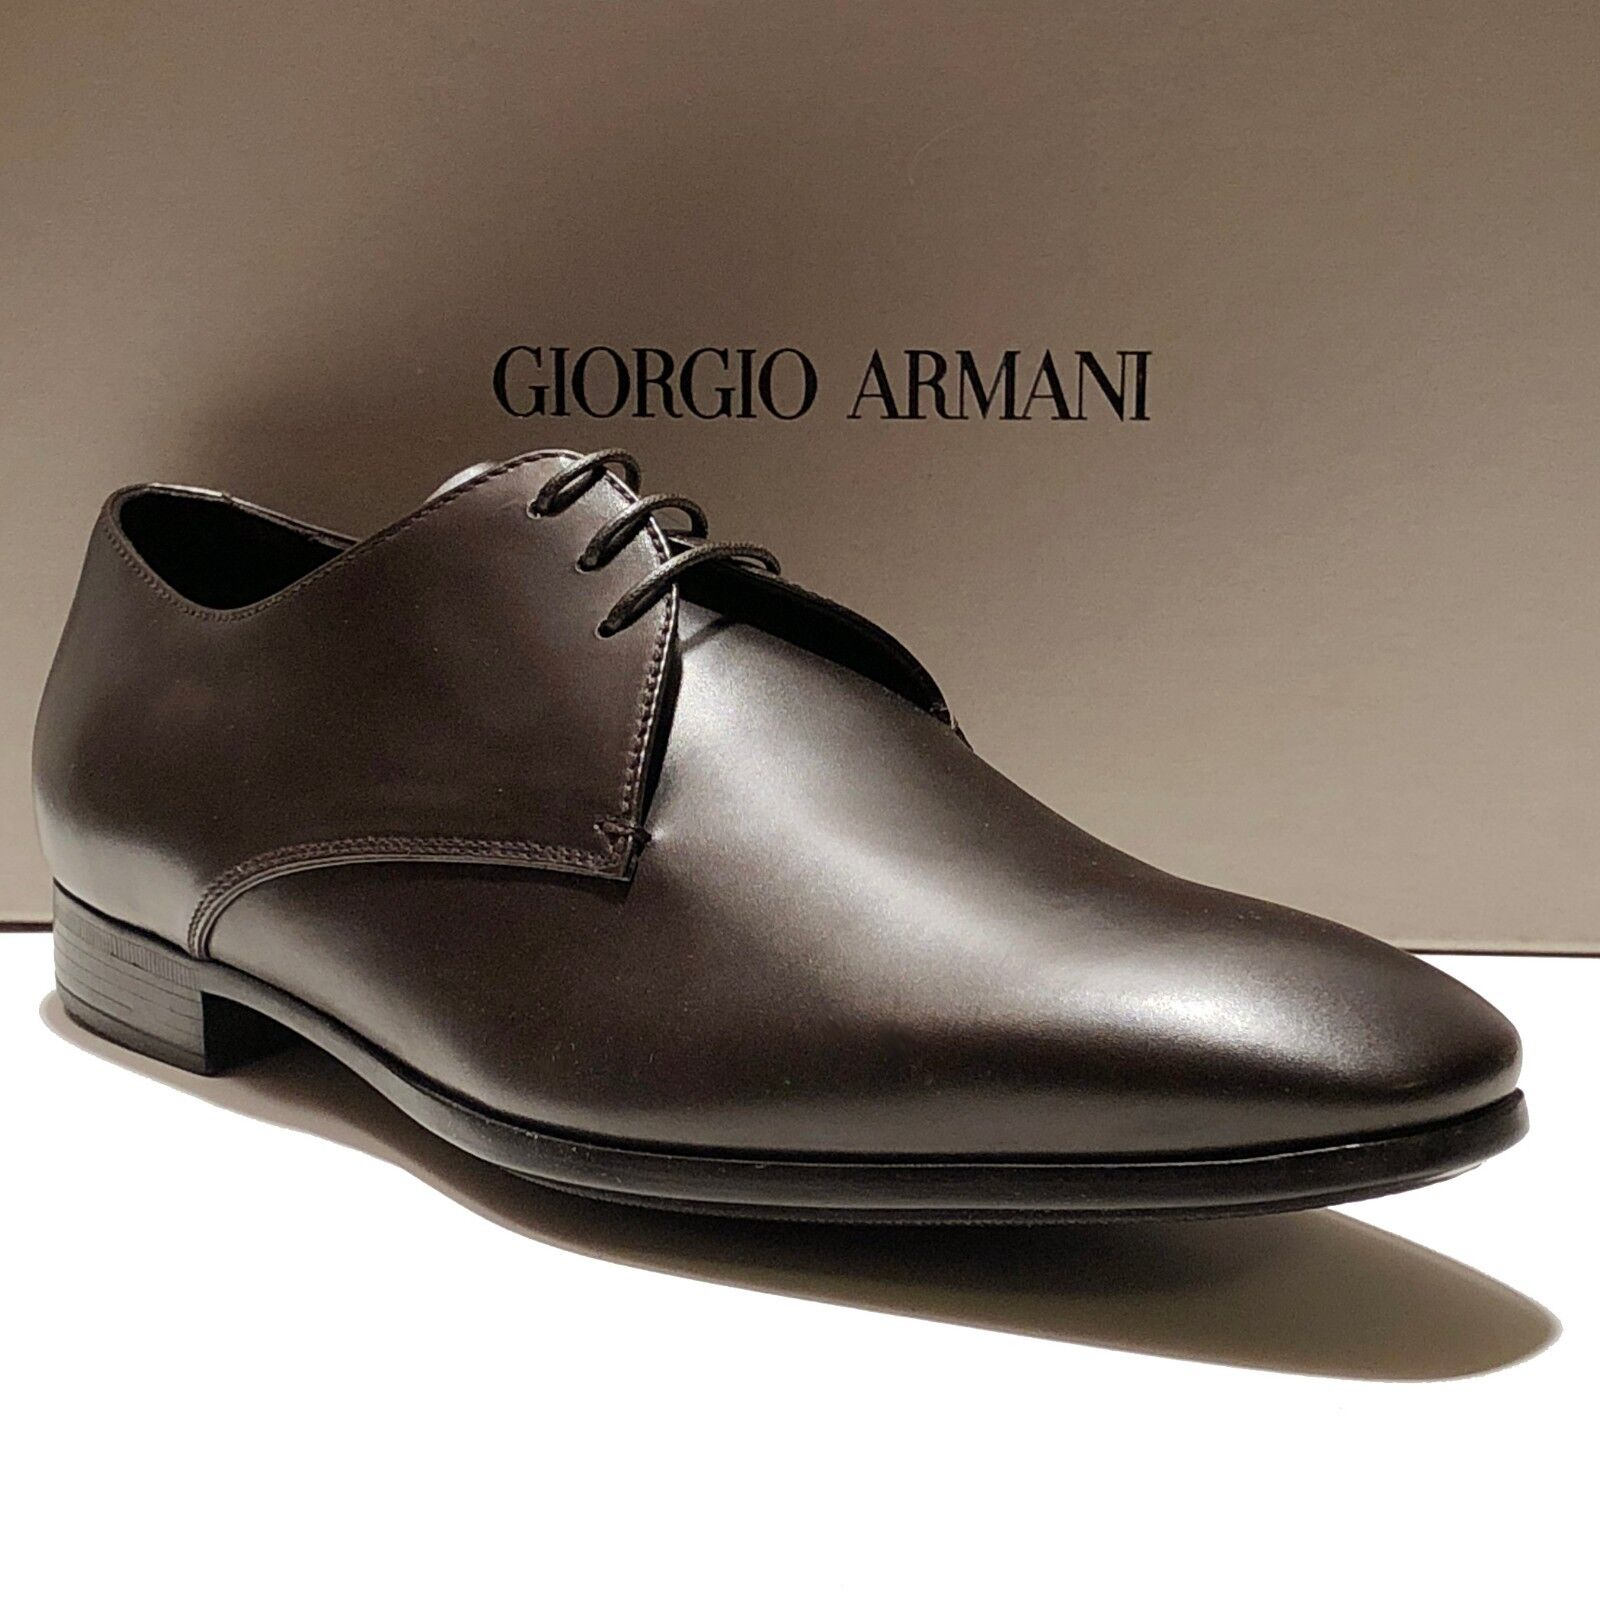 NEW Giorgio Armani ITALY Brown 13 46 Leather Formal Dress Oxford Men's shoes